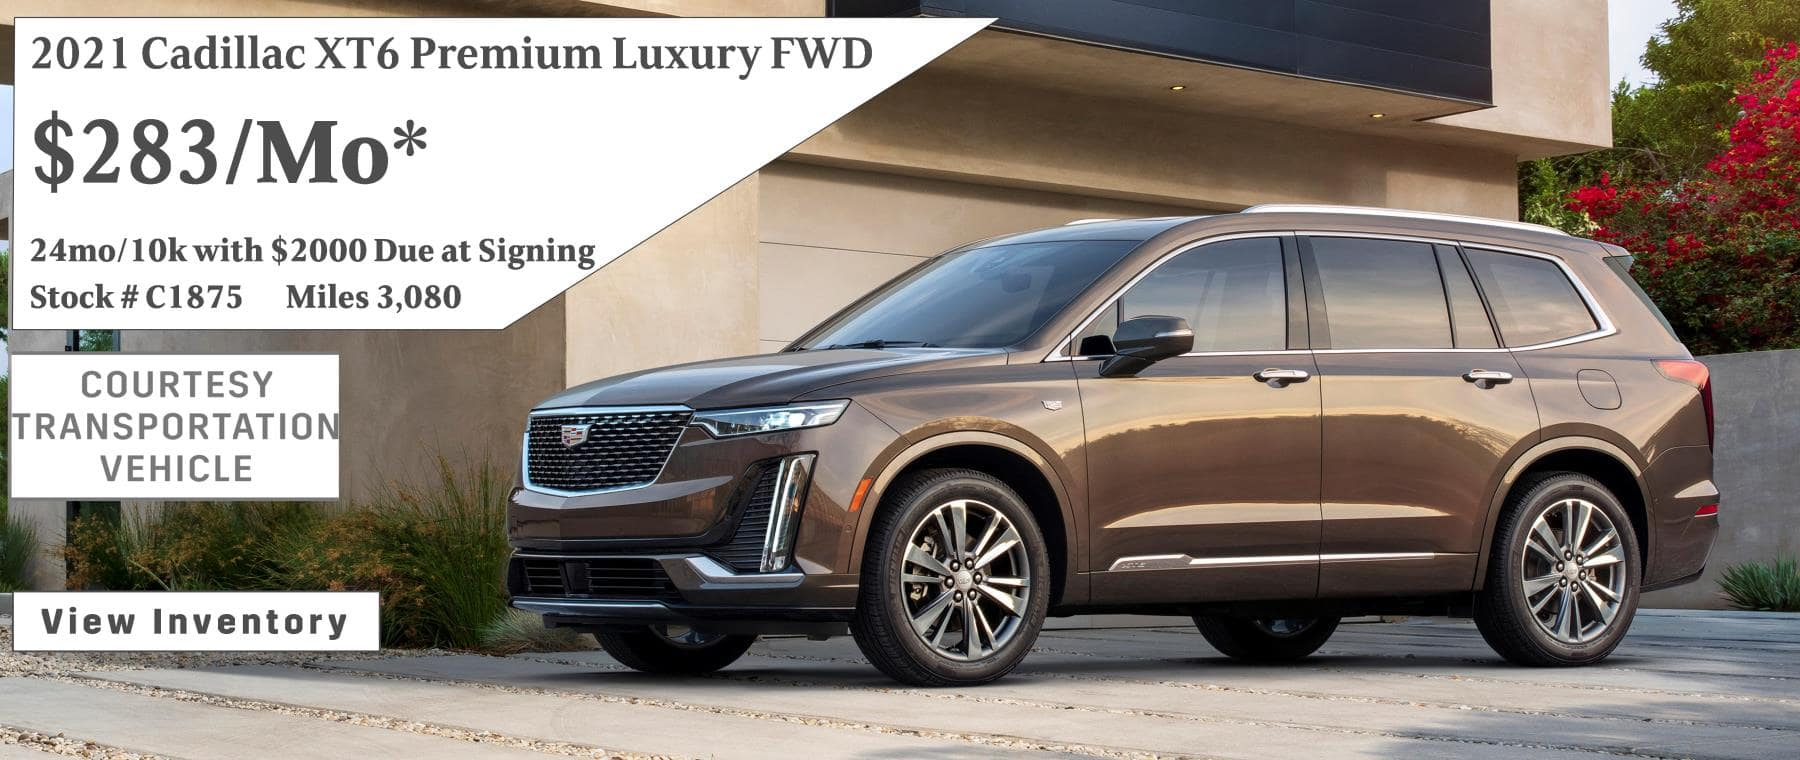 March Cadillac XT6 Lease Special $283/mo*